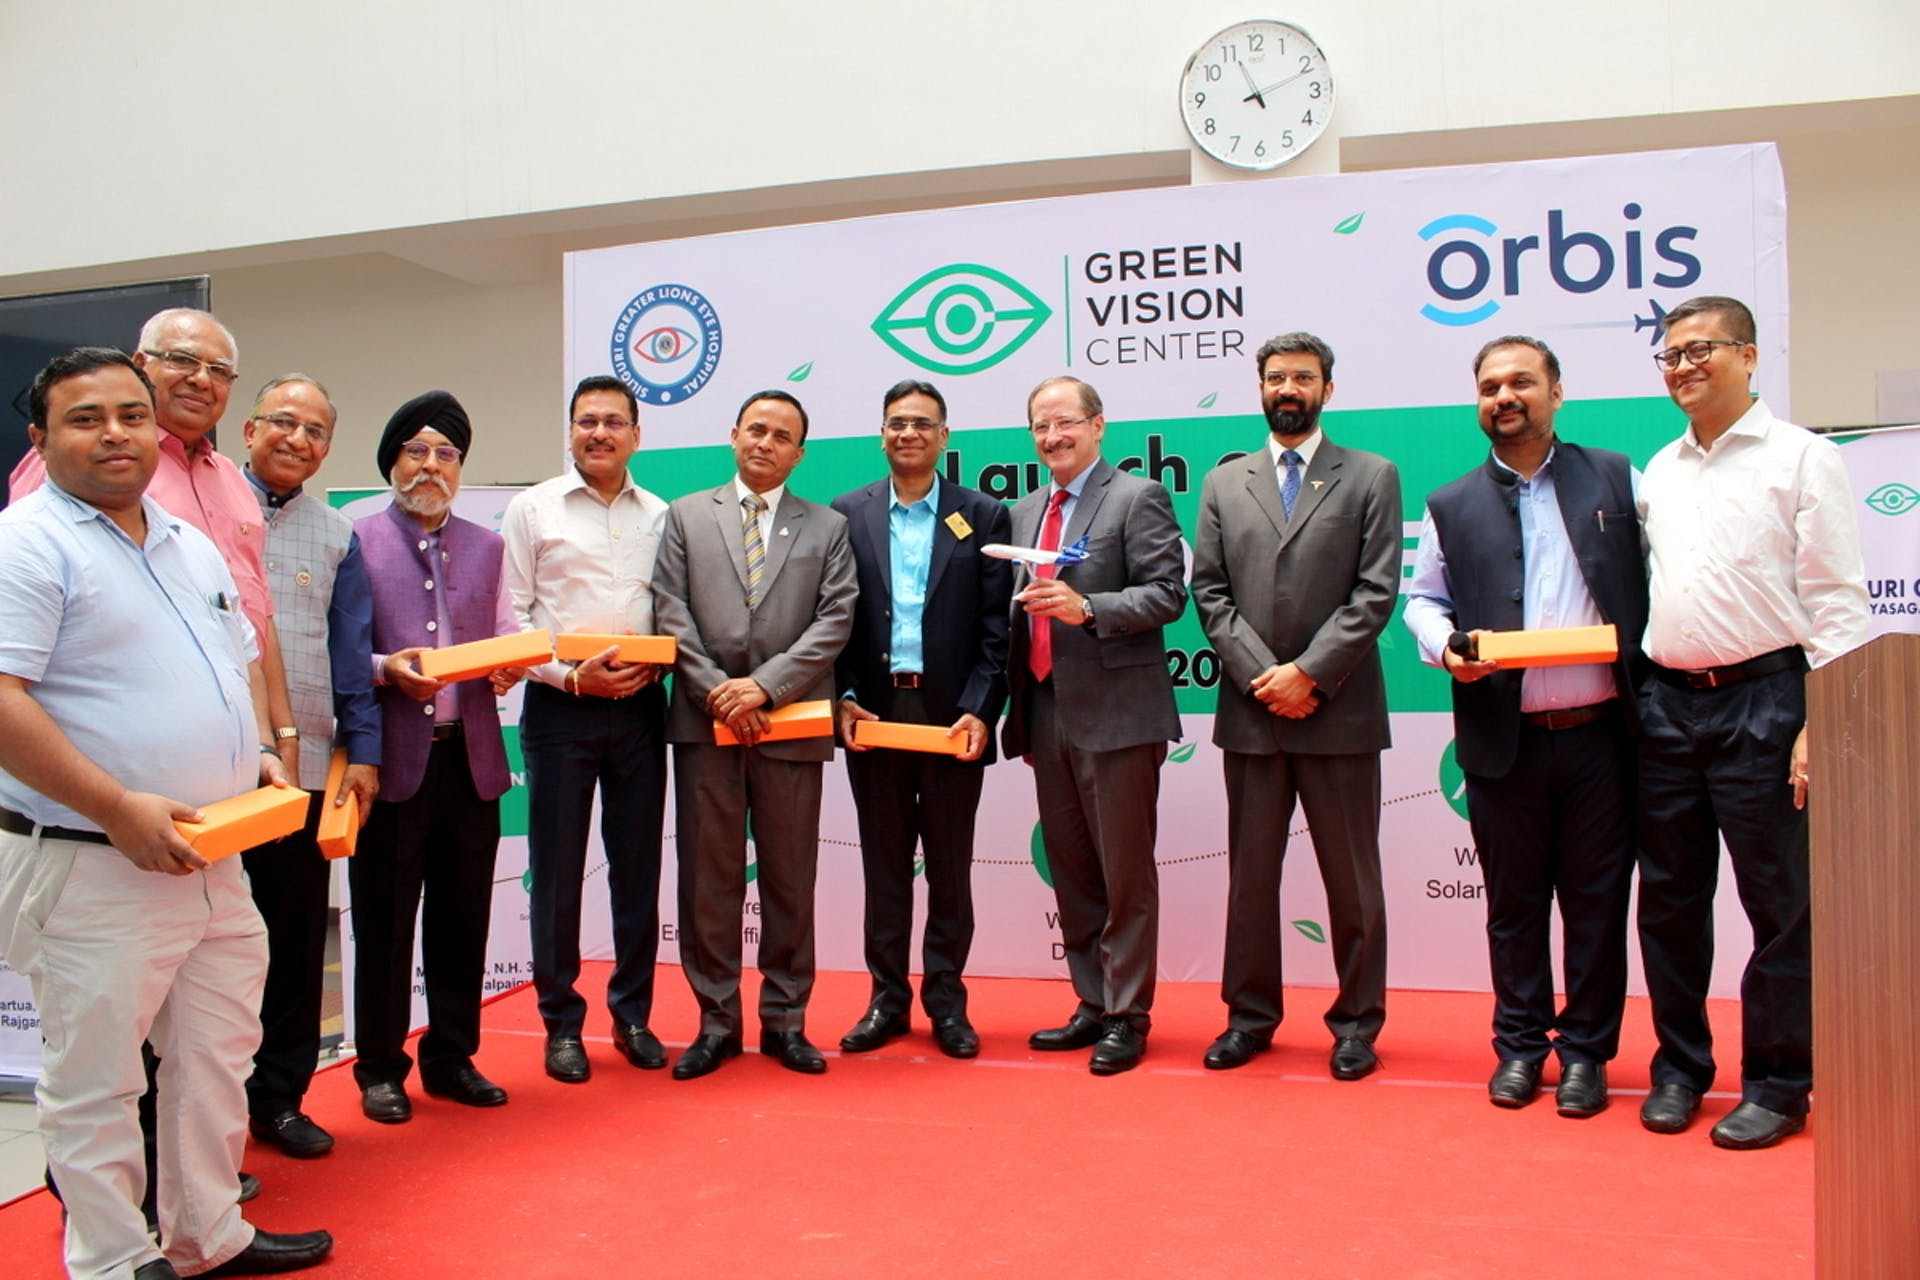 Orbis CEO, Country Director, Program Director along with others at the launch event